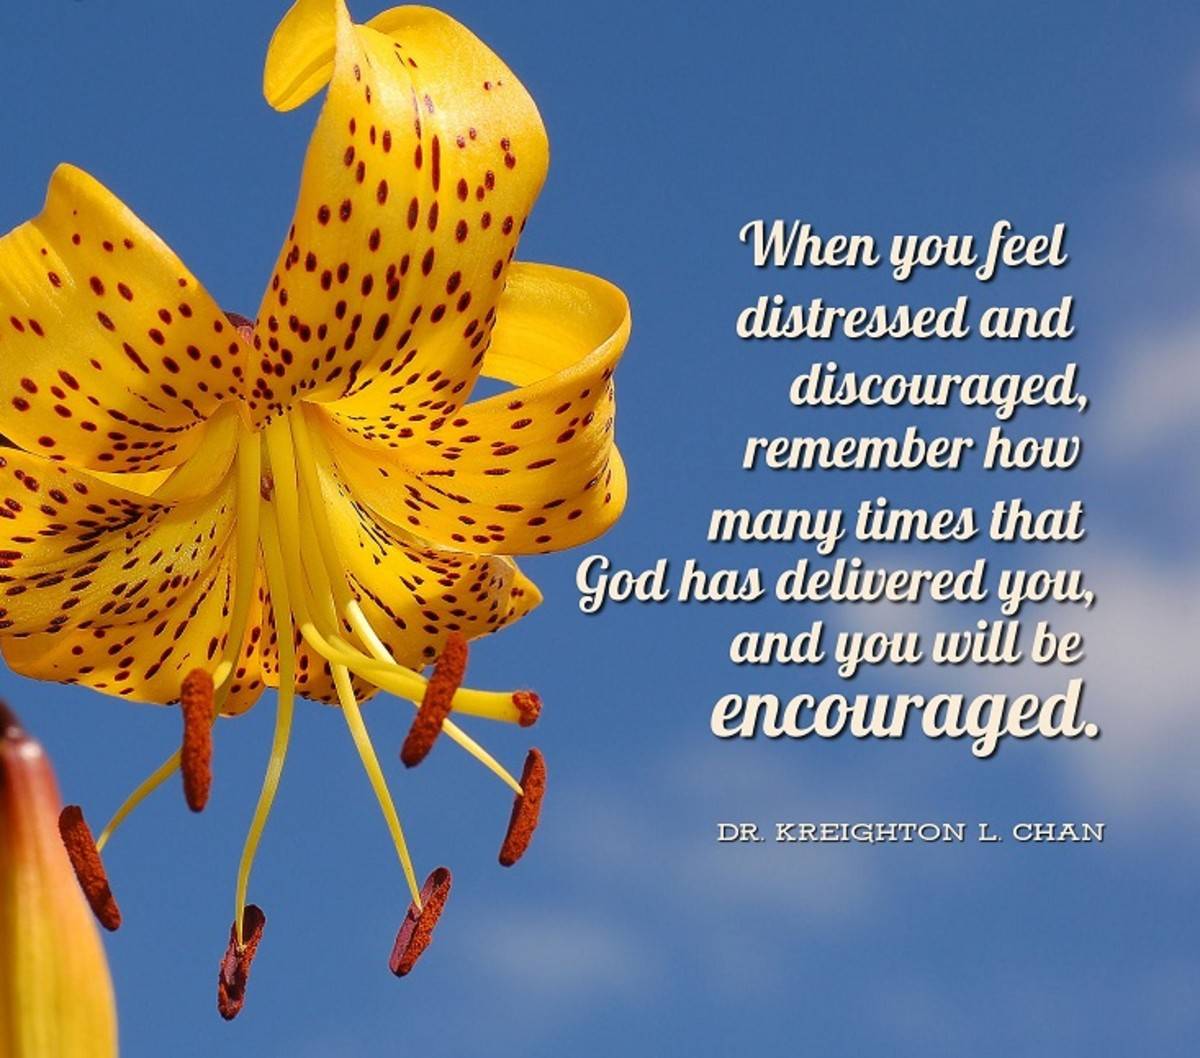 Remember how many times that God has delivered you, and you will be encouraged.